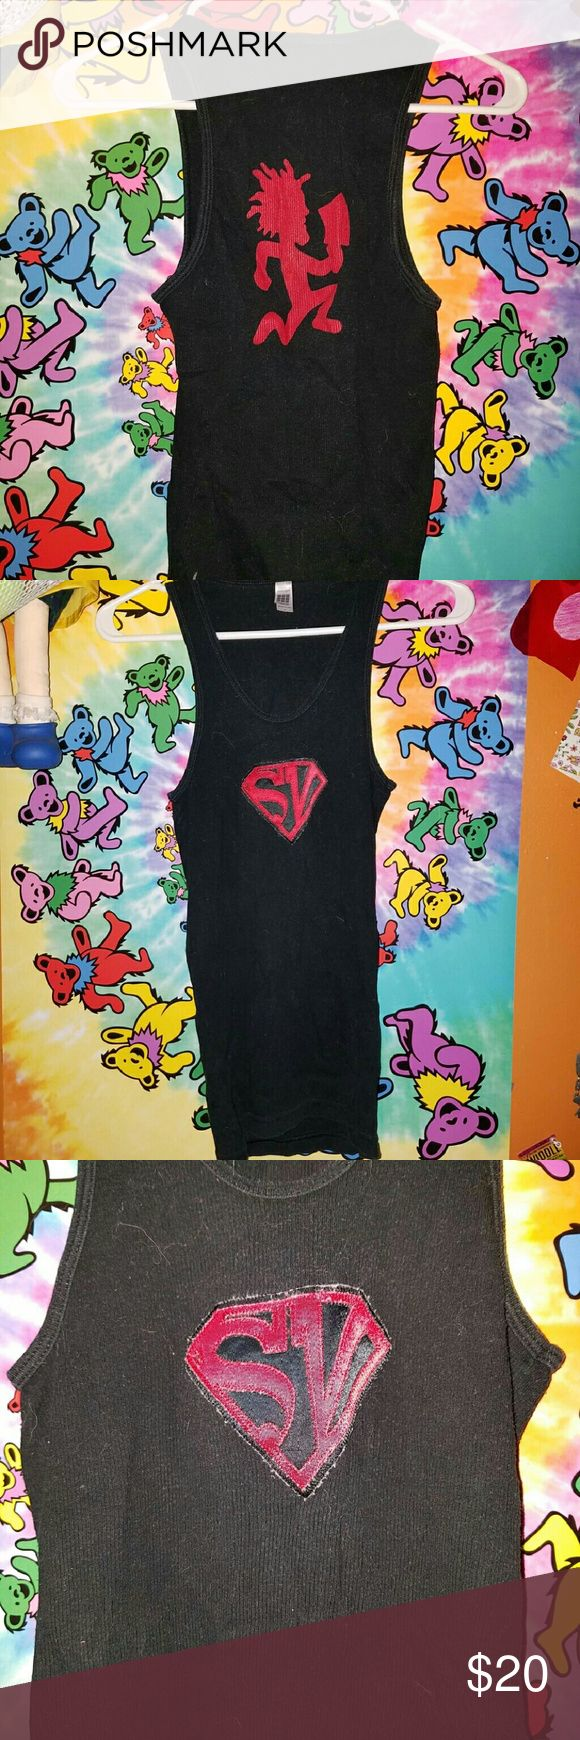 Supa Villainz Wife Beater Well loved but still super dope and rare af ?? definitelt a neccesity for a collector. Originally from hatchet gear and I promise you won't find this anywhere else. I believe supa villainz was a collab between ICP and Esham.   Tags insane clown posse juggalo juggalette hatchet man hatchetgear psychopathic records soopa villains Hot Topic Tops Tank Tops